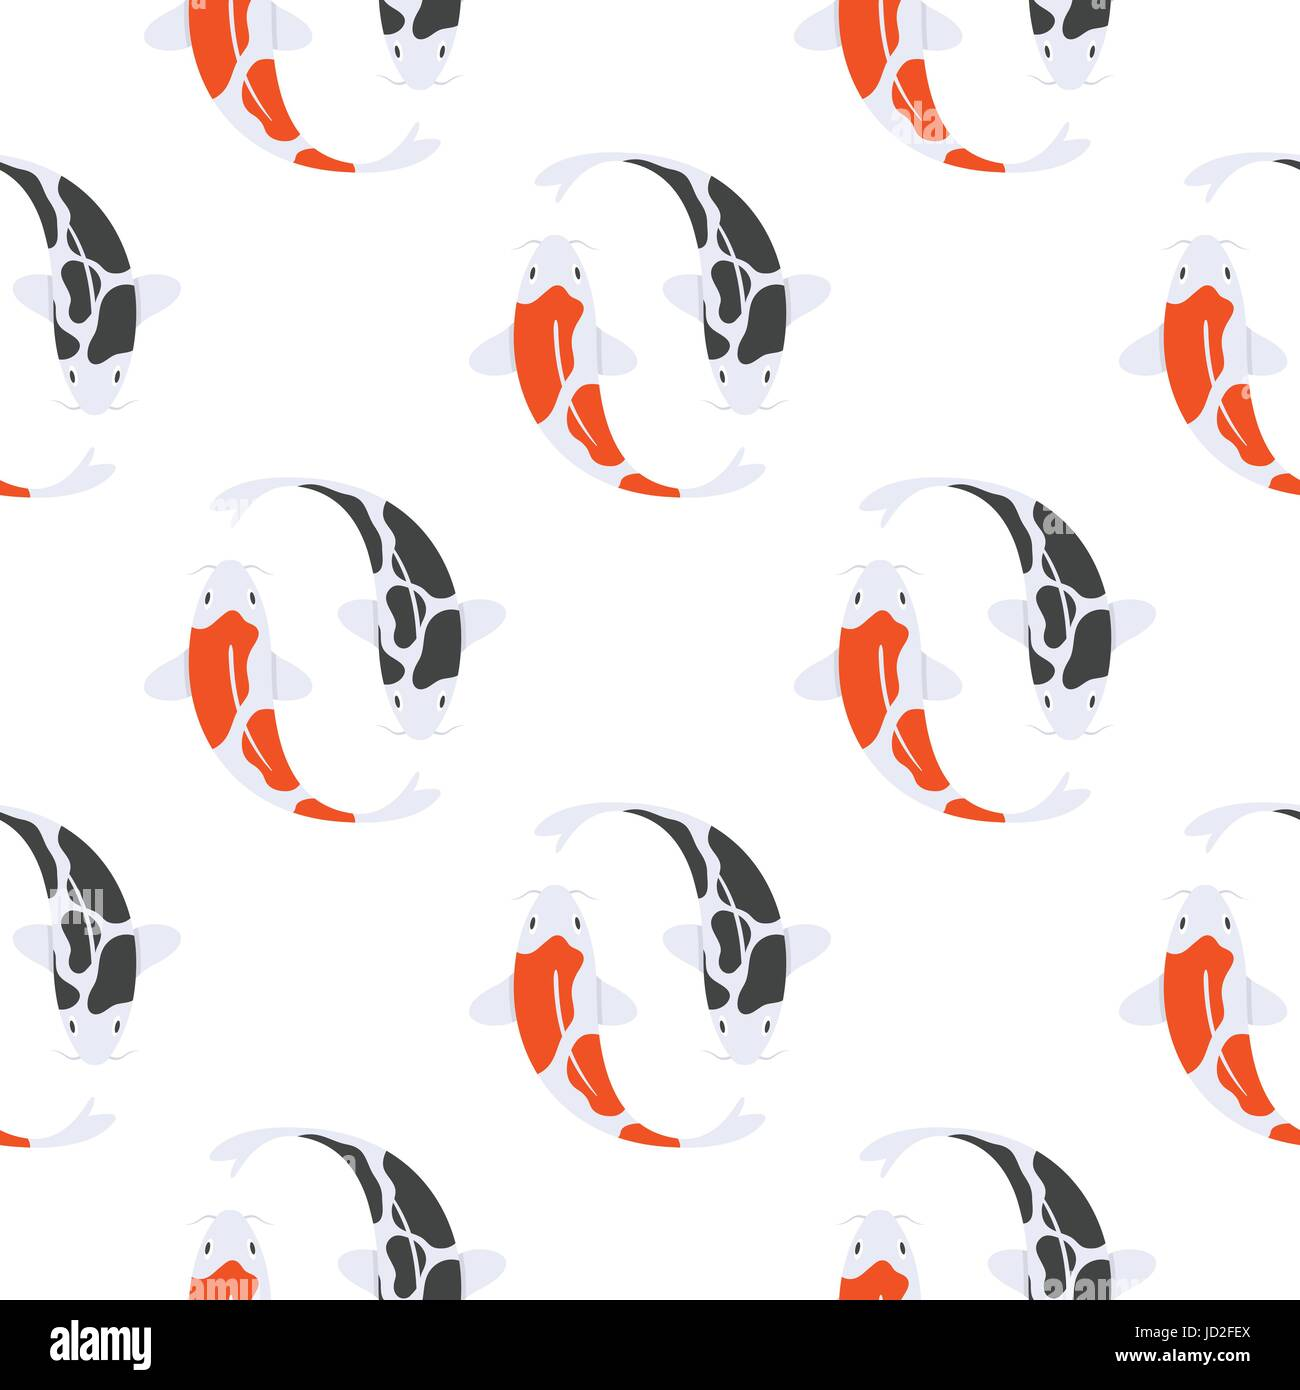 Vector flat style seamless pattern with Japanese koi fish. Children's wallpaper.